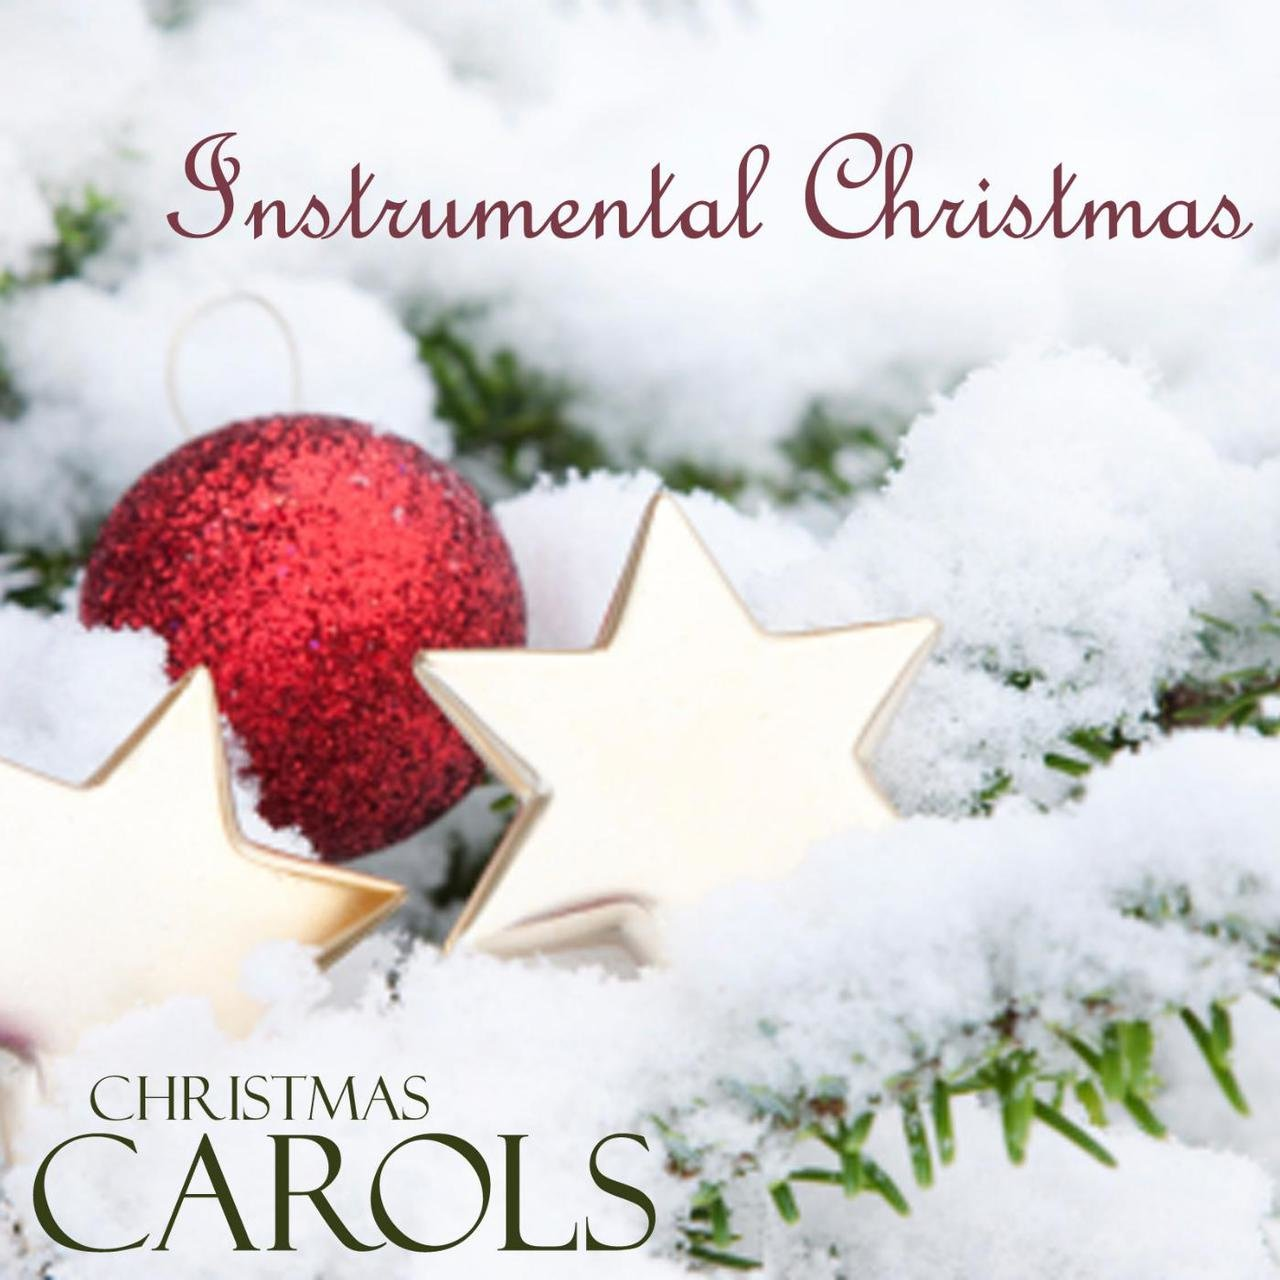 TIDAL: Listen to Instrumental Christmas Carols - Piano Music for ...